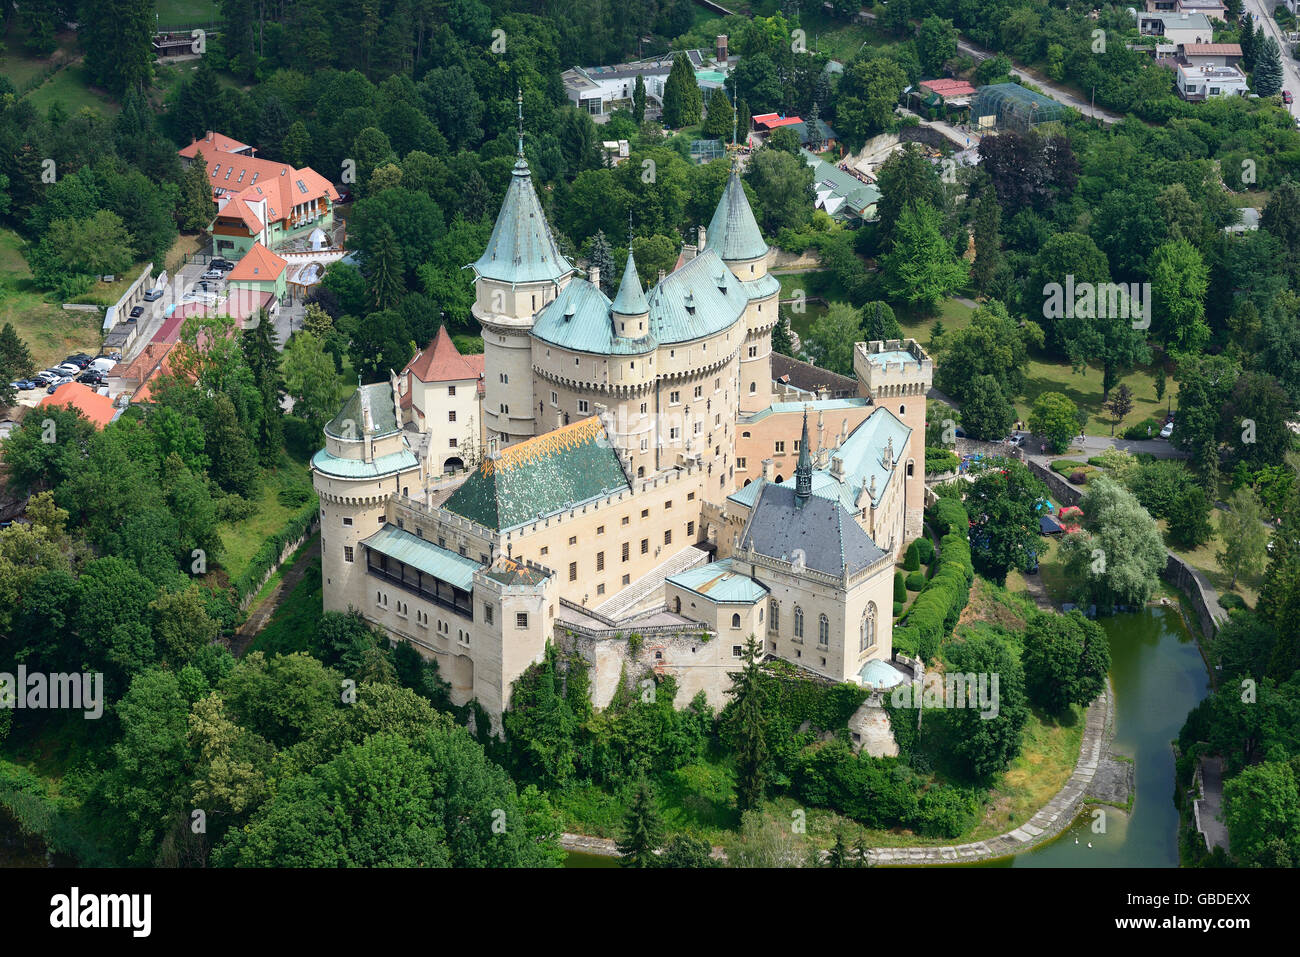 BOJNICE CASTLE (aerial view). Near the town of Prievidza in Slovakia. - Stock Image